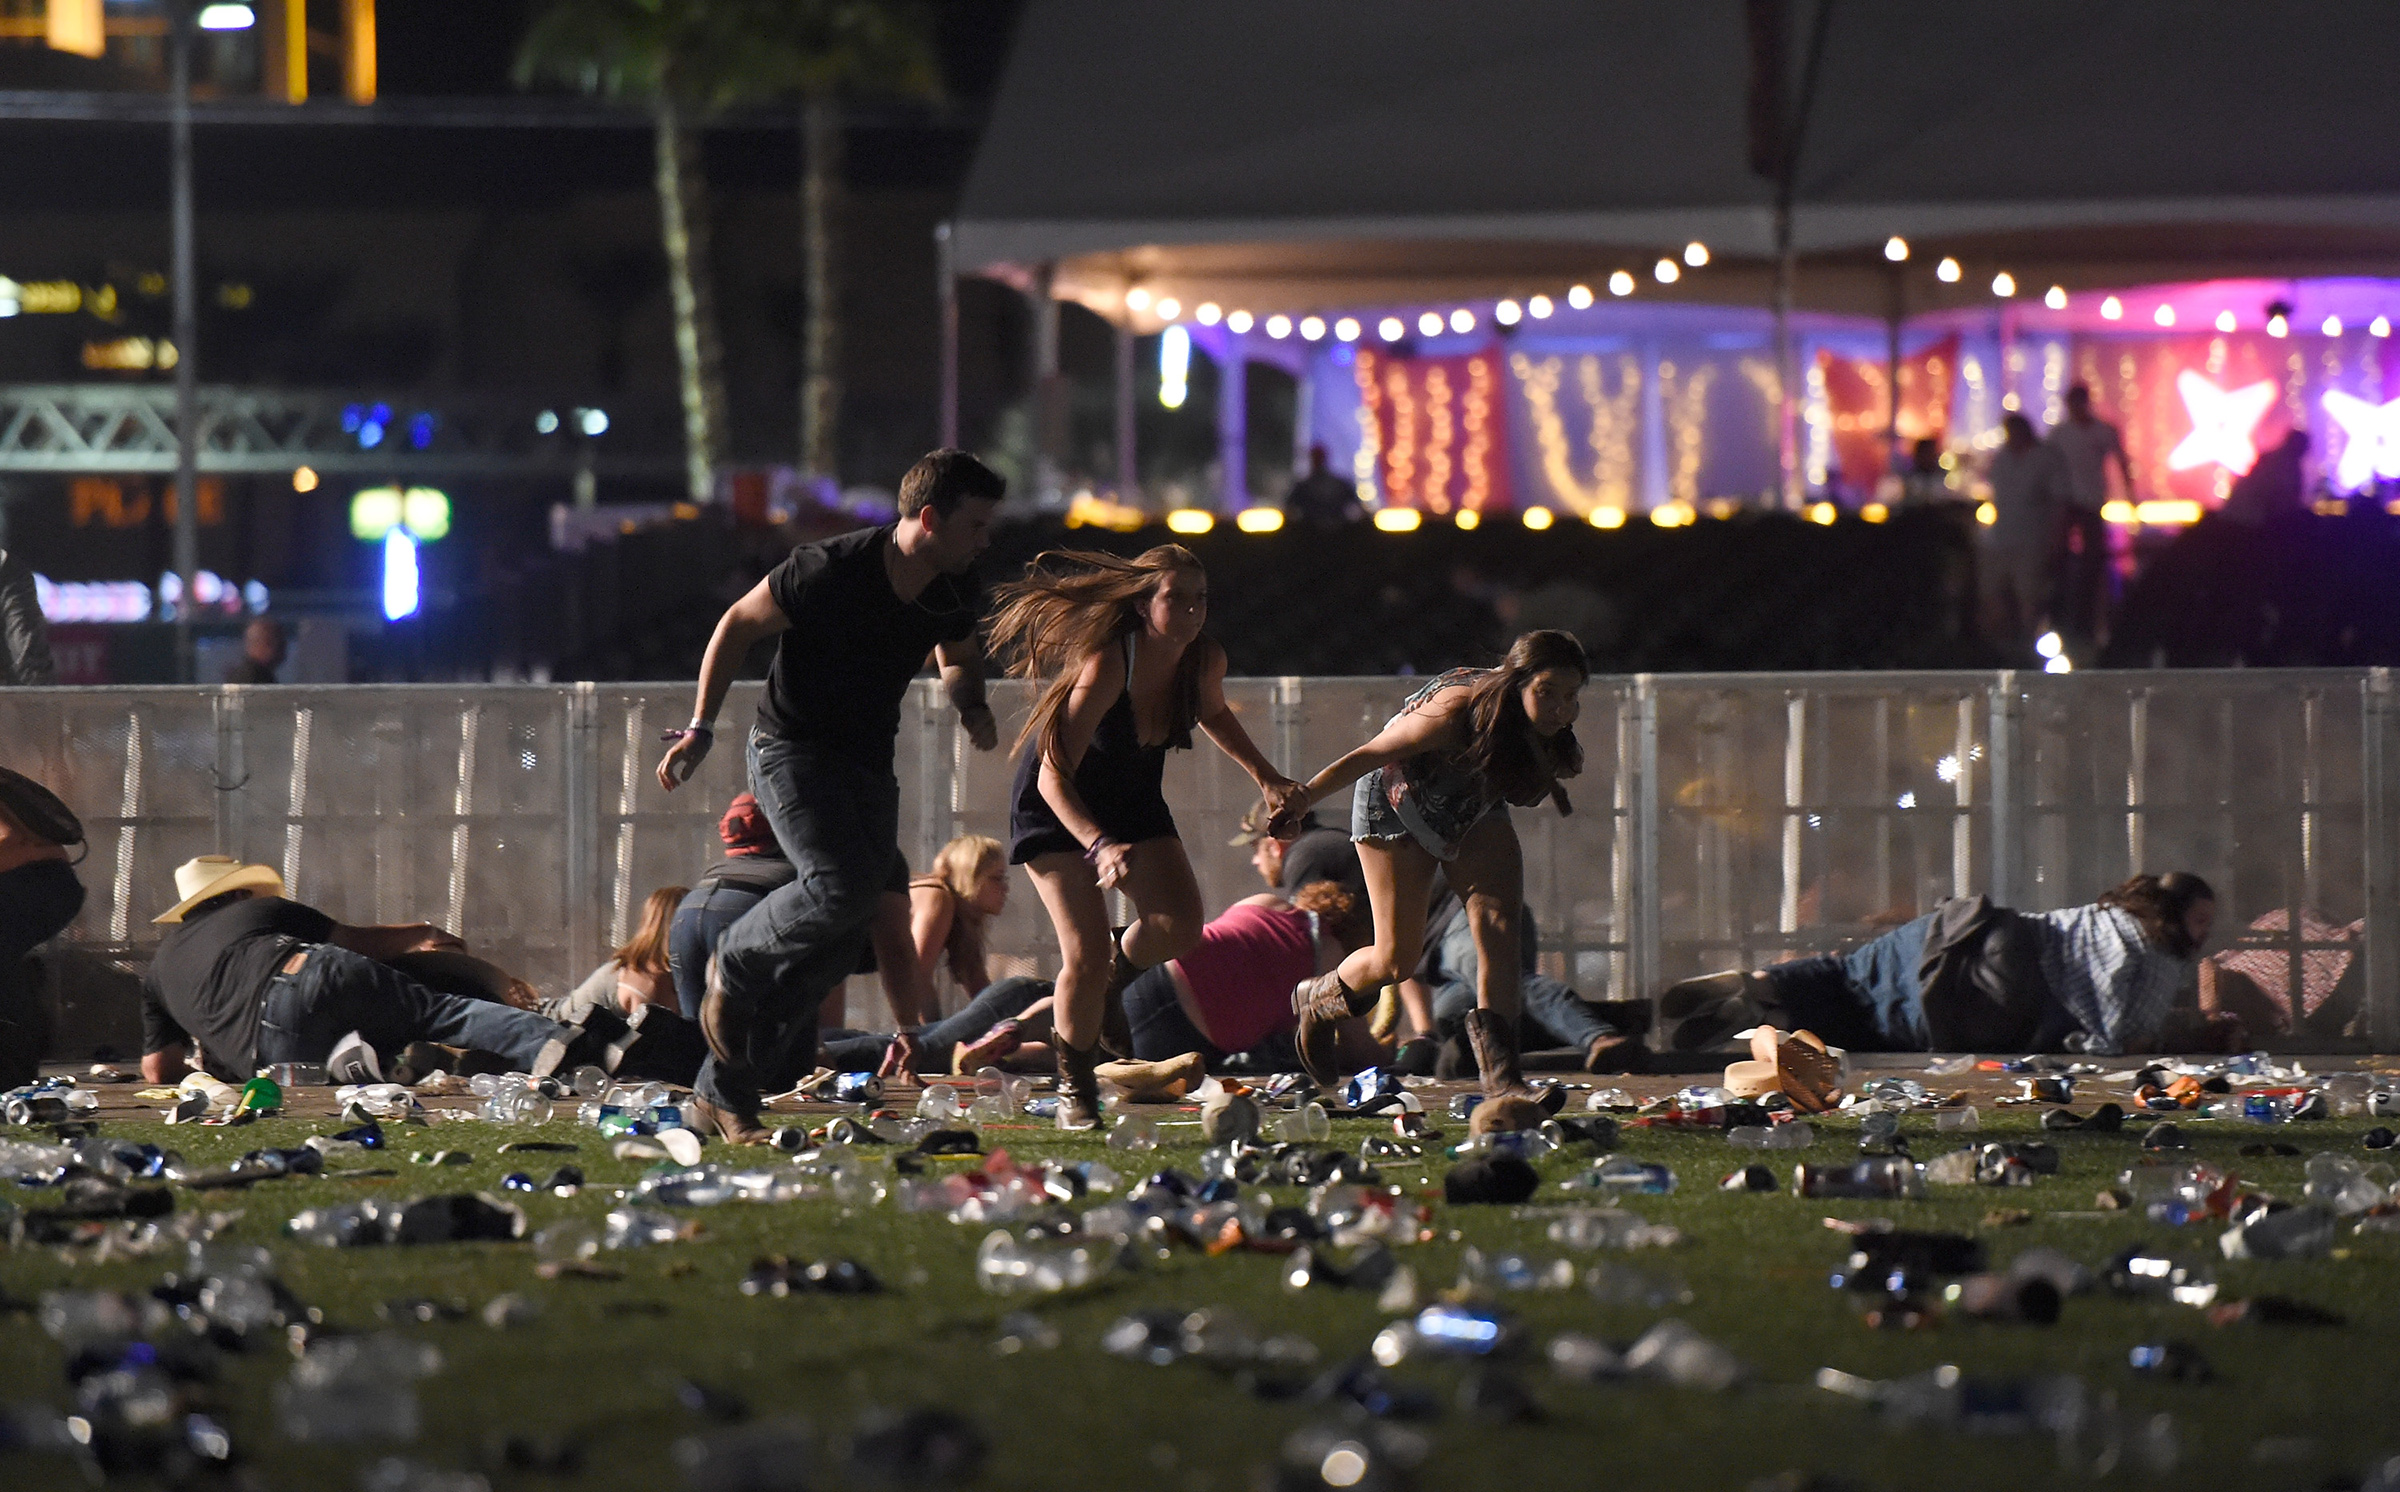 People run from the Route 91 Harvest country music festival after apparent gun fire was heard on Oct. 1, 2017 in Las Vegas.